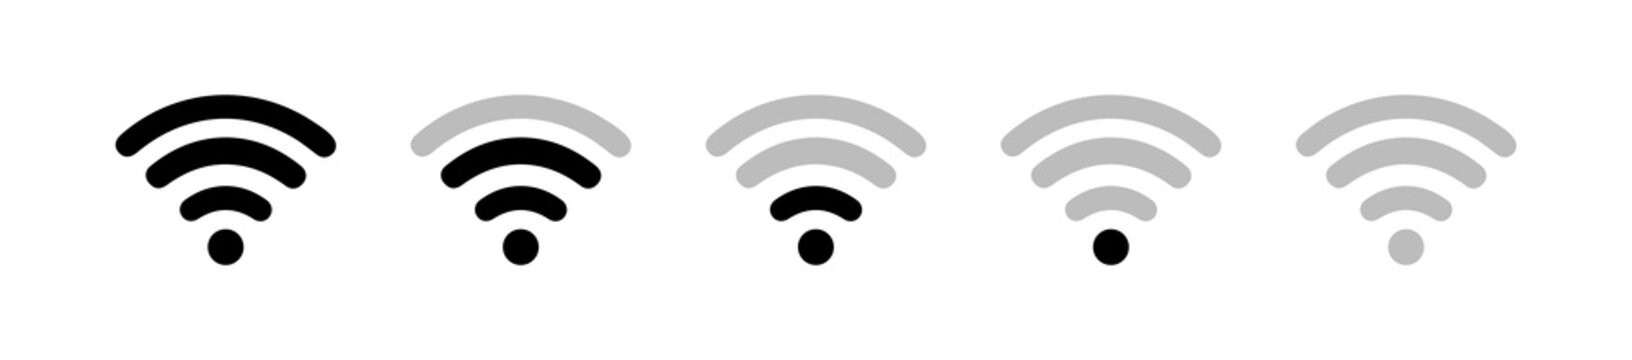 Wi-Fi wireless signal icon set. Different levels of communication. Wi-Fi button. Vector illustration.